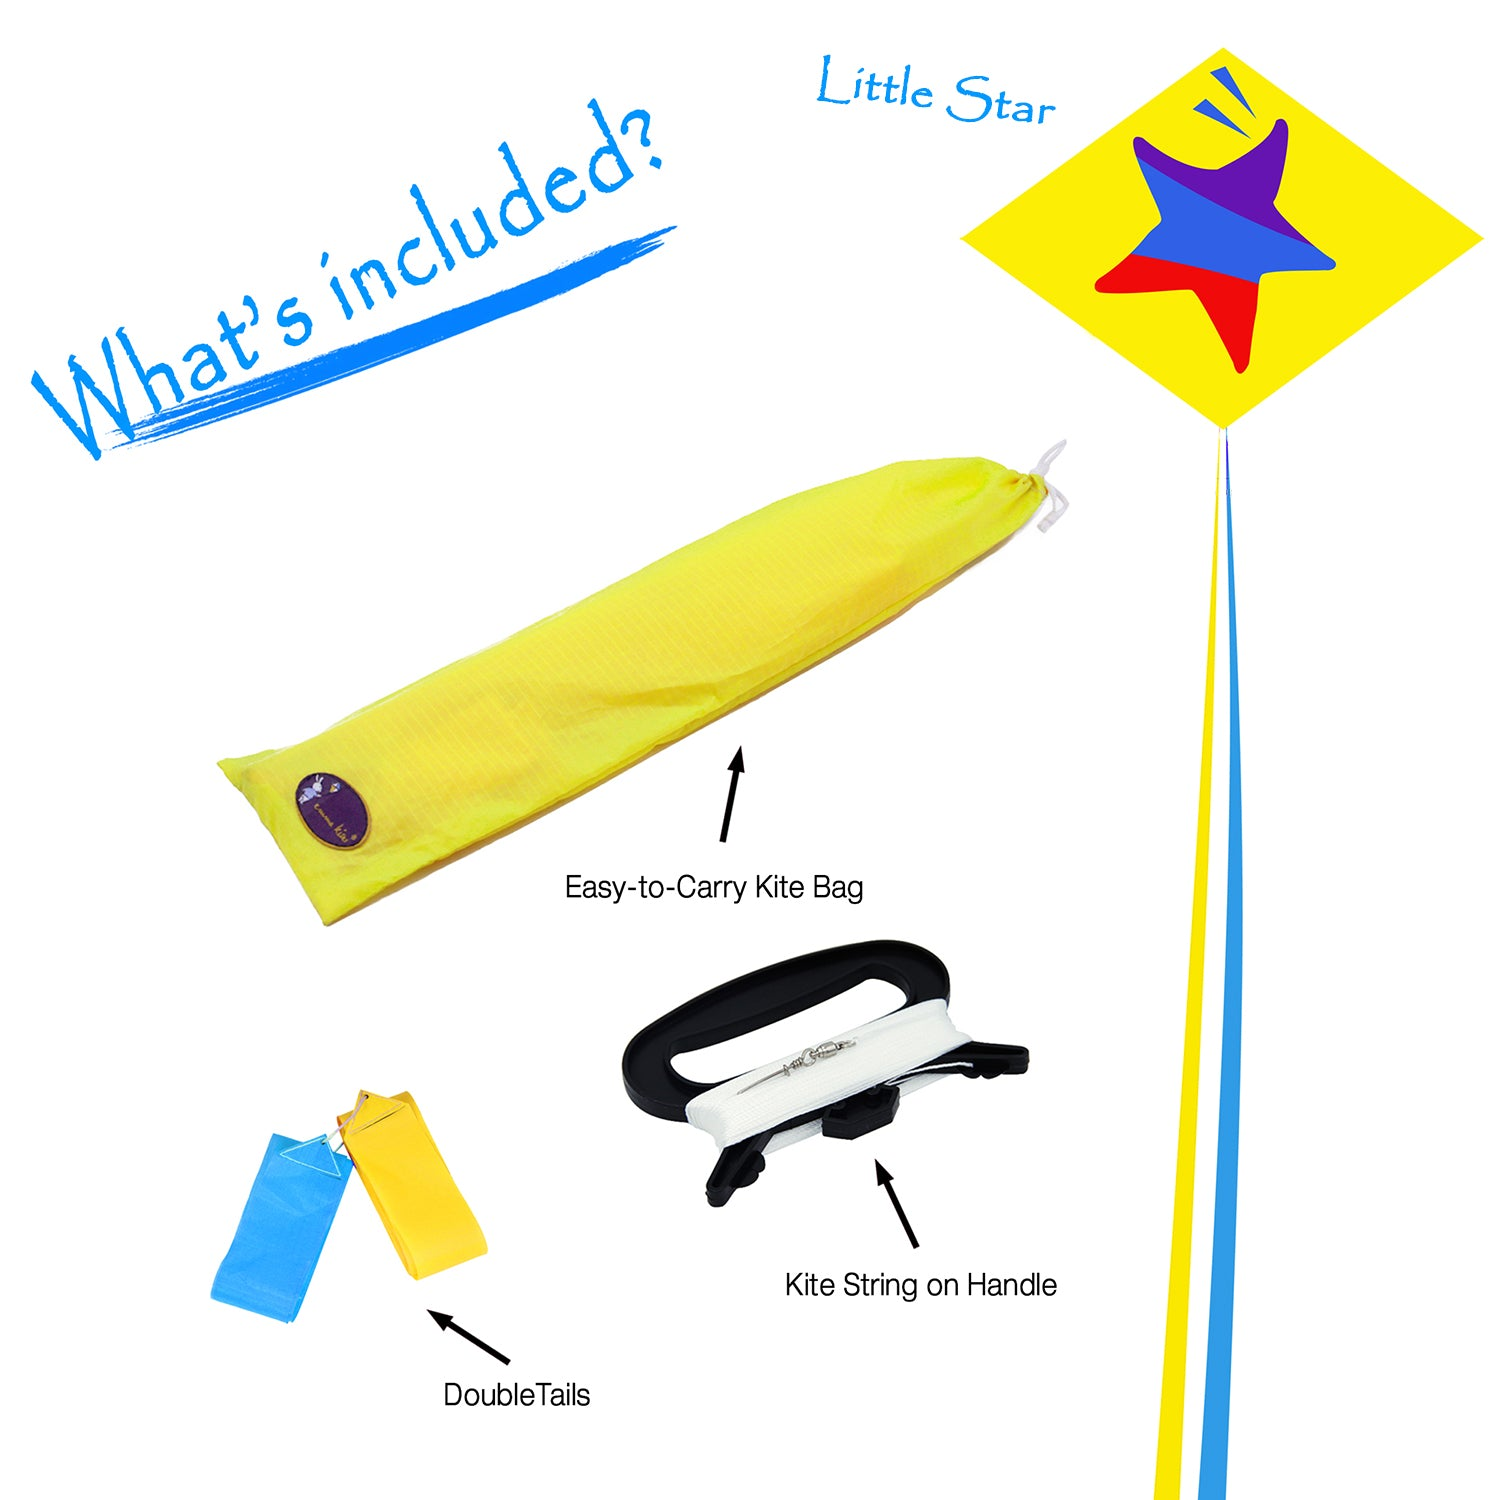 Little Star Diamond Kite 30 Inch RTF Kit